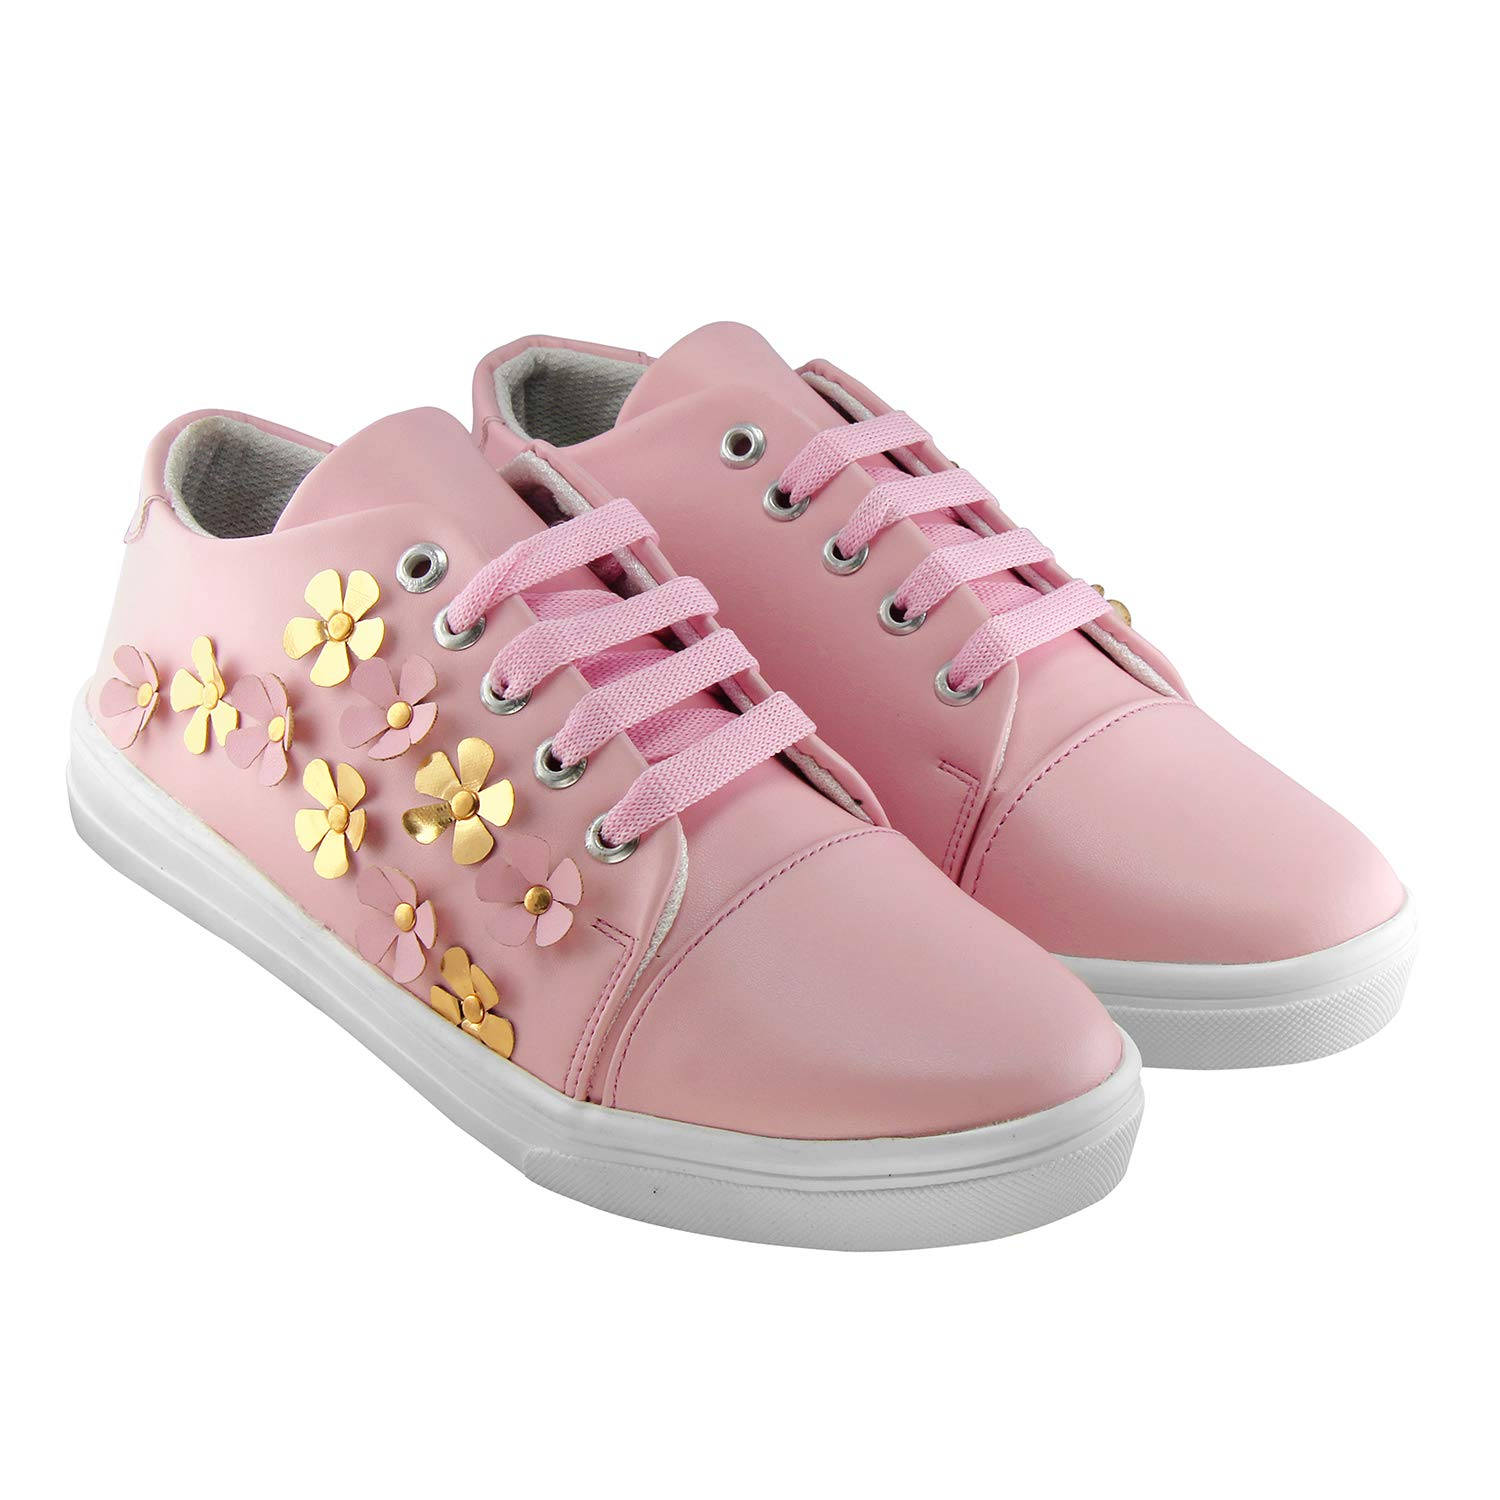 Casual Sneakers Pink at Amazon.in